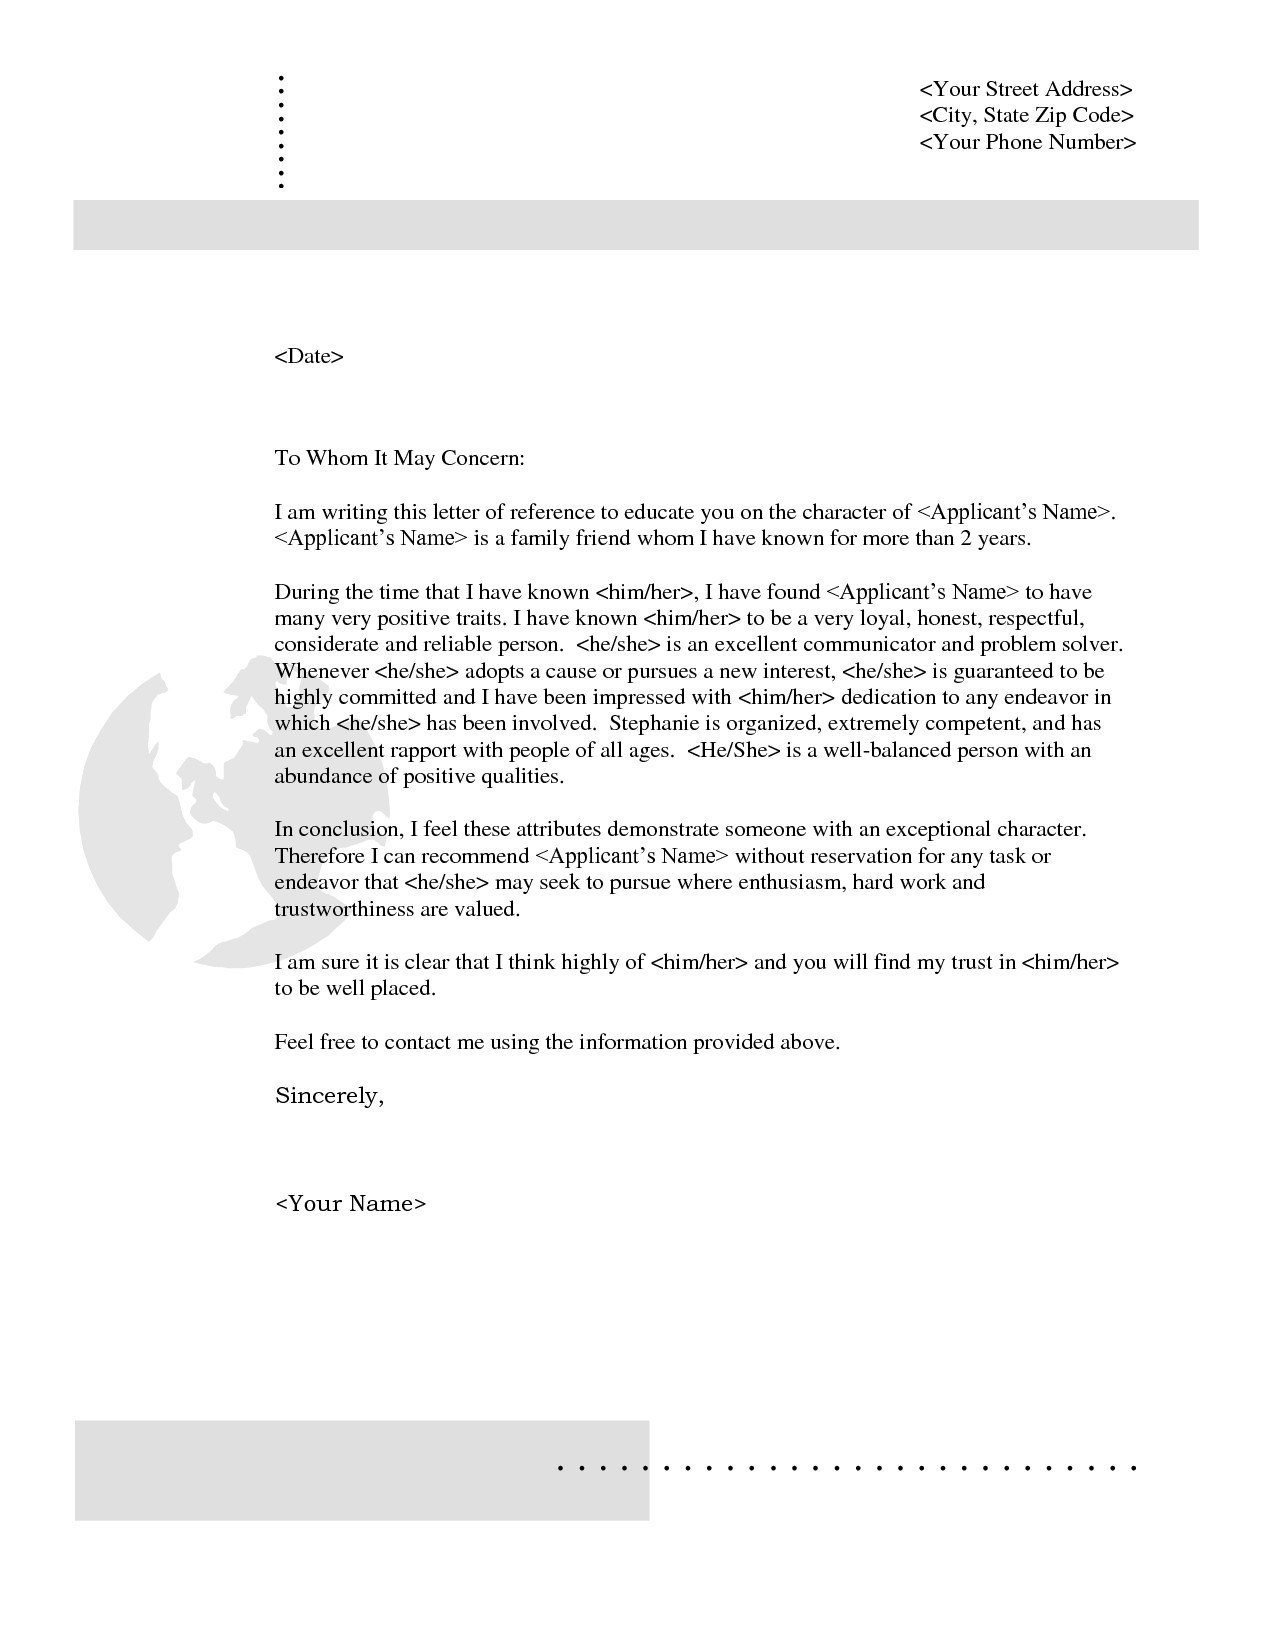 Reference Letter for Friend Character Template - Re Mendation Letter Template Job Copy Example Reference Letter for